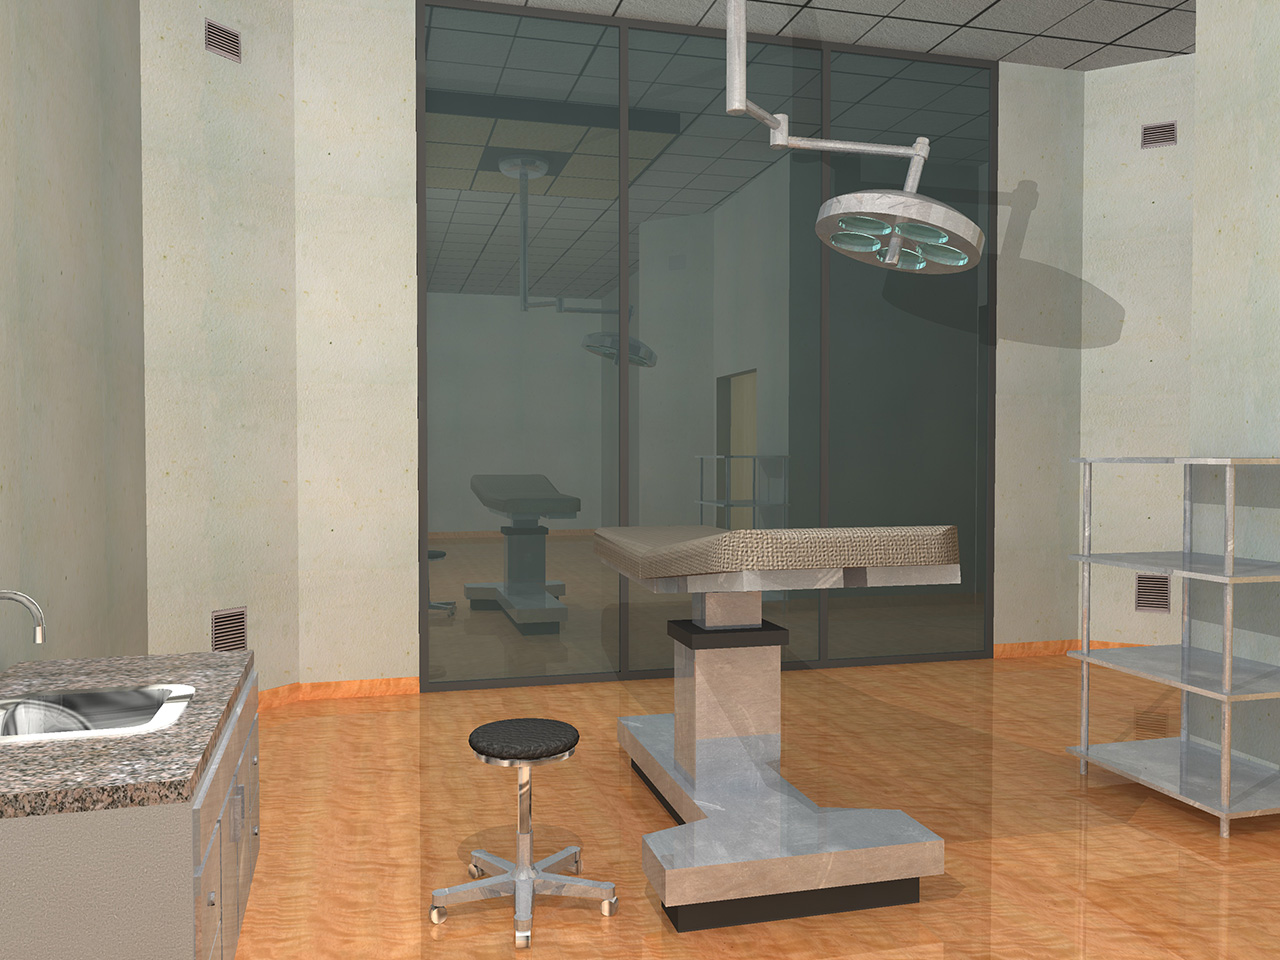 Development of outpatient clinic areas - Padova Italy 01